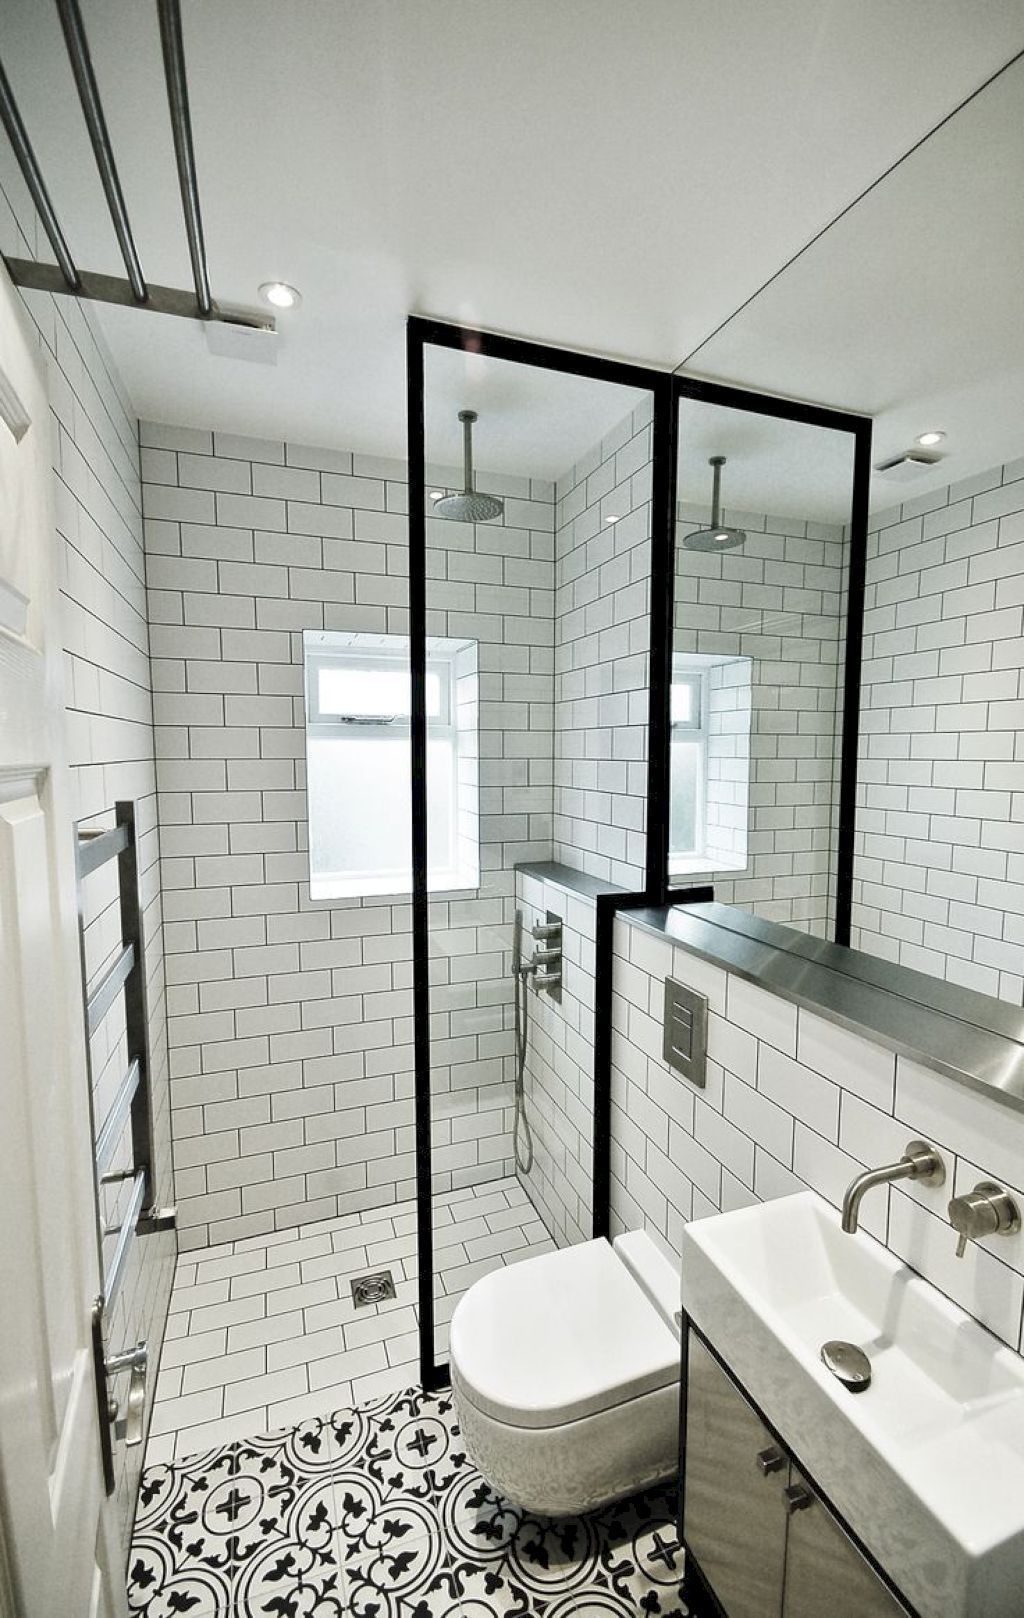 Awesome 100 Stunning Small Bathroom Remodel Ideas https://homeideas ...